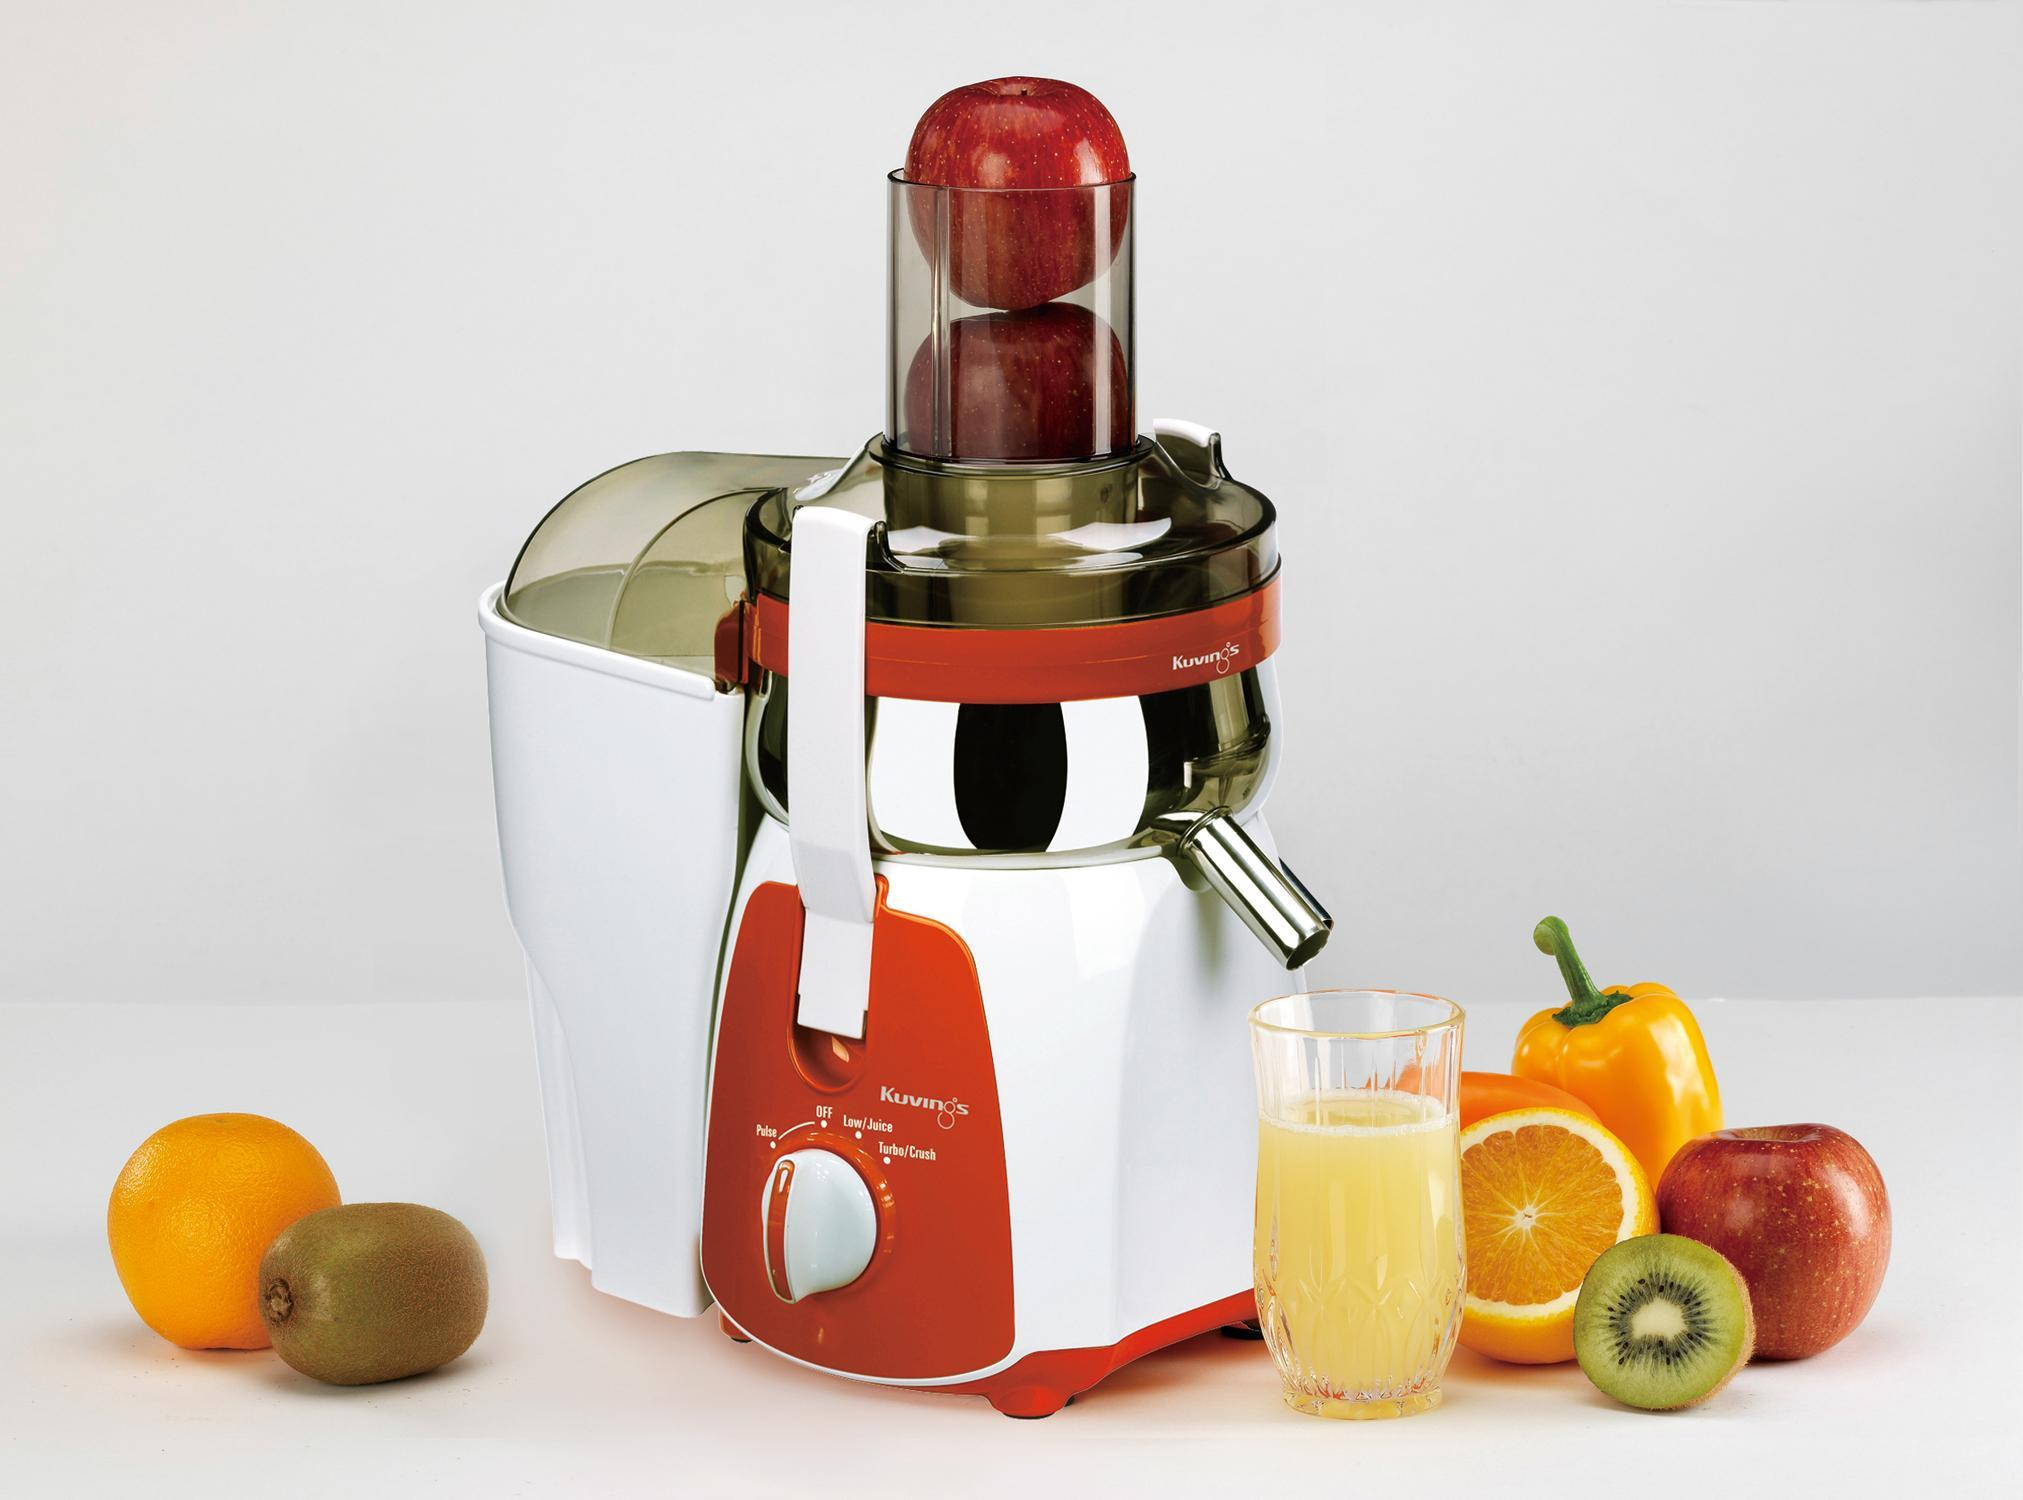 Kuvings njm9010u juicer blender 450w 2in1 system